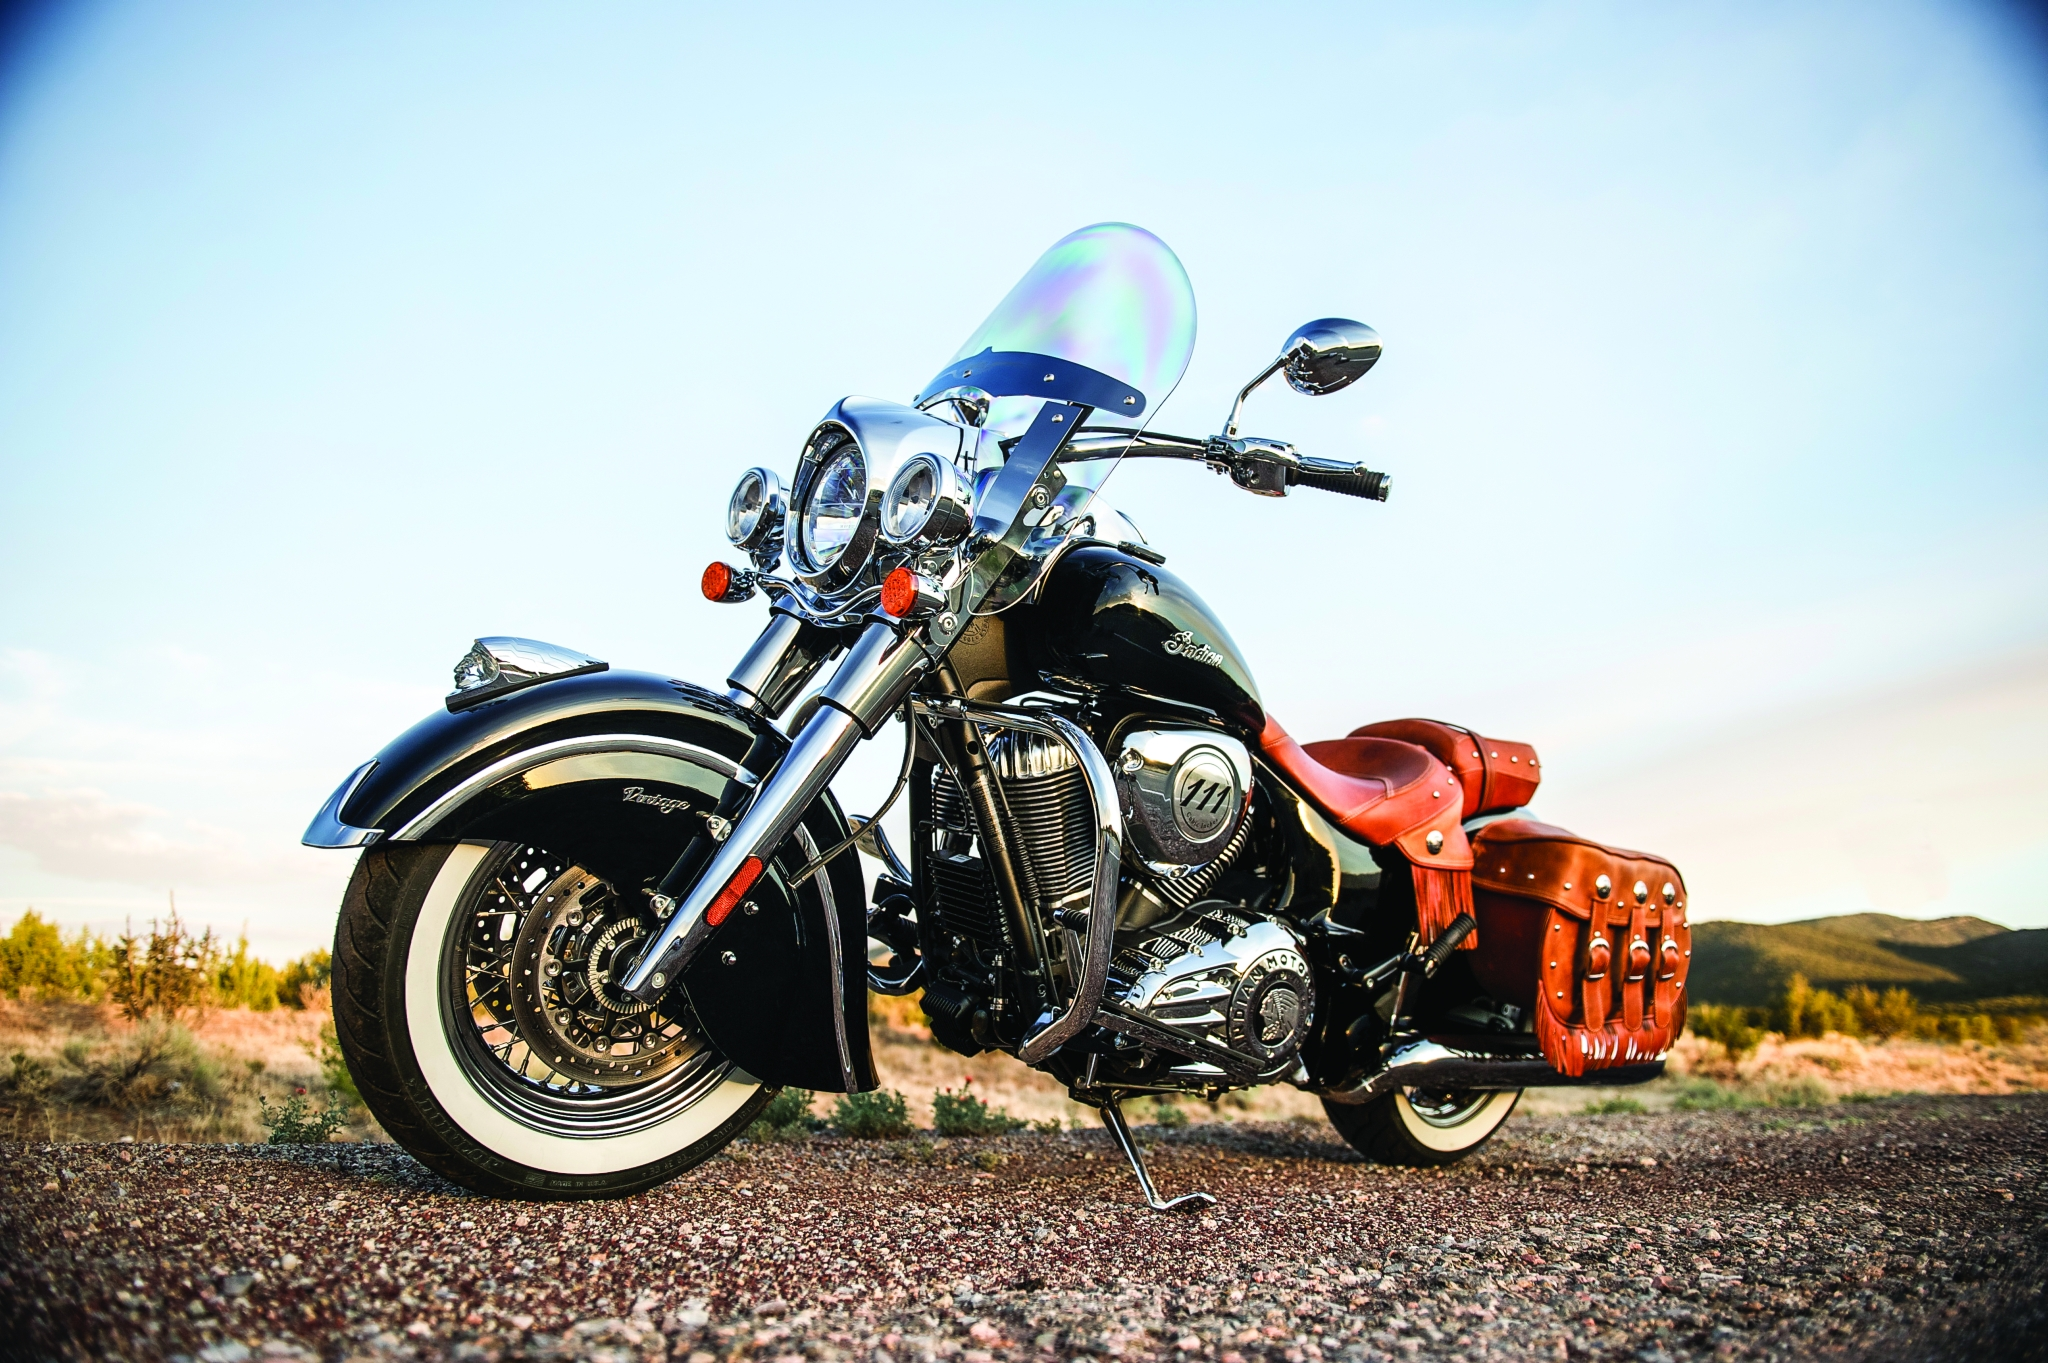 2014 Indian Chief Vintage Official Pictures - autoevolution